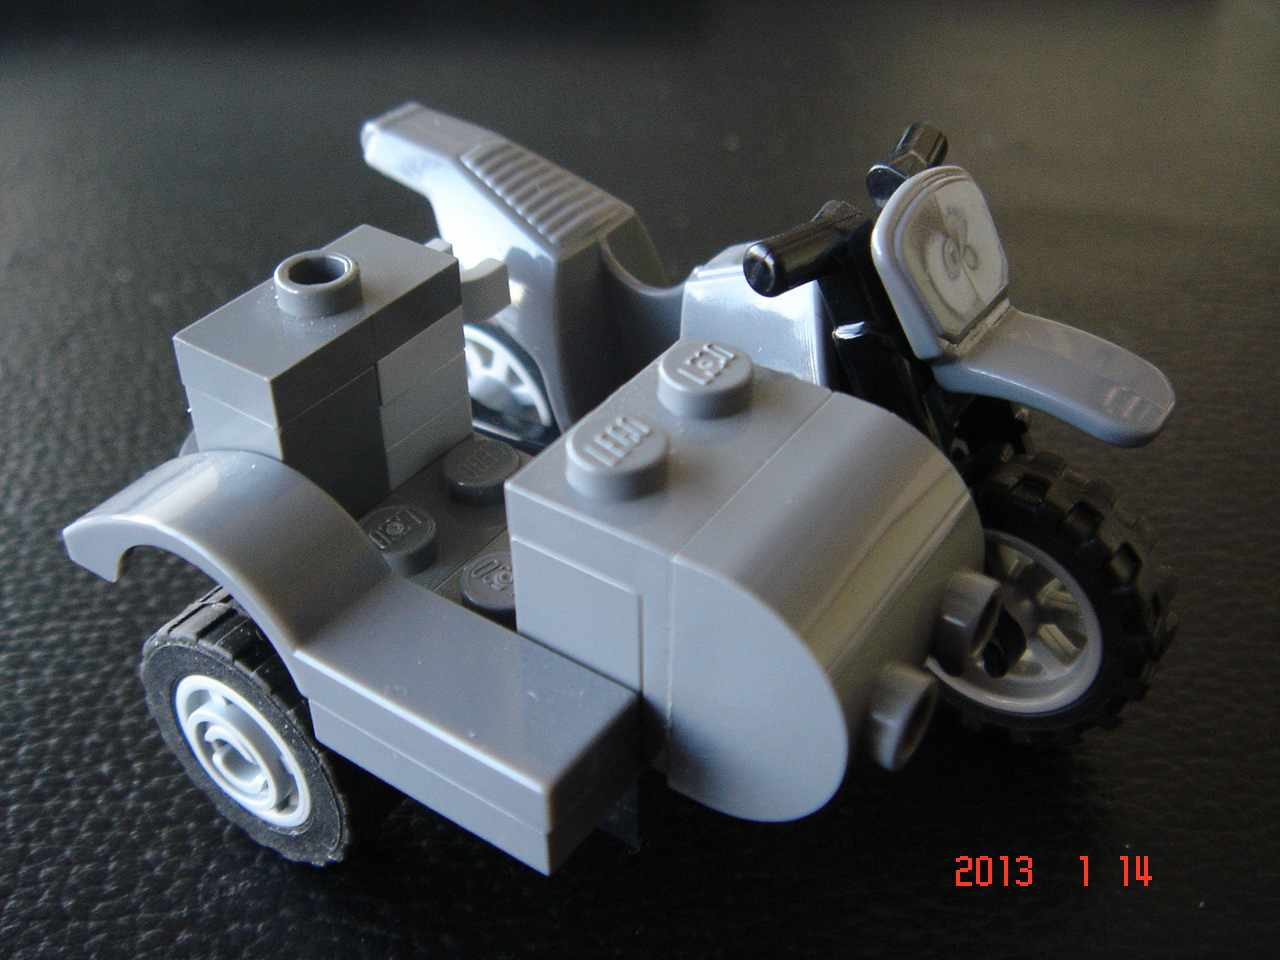 lego_bike_ucc-office_0114009.jpg